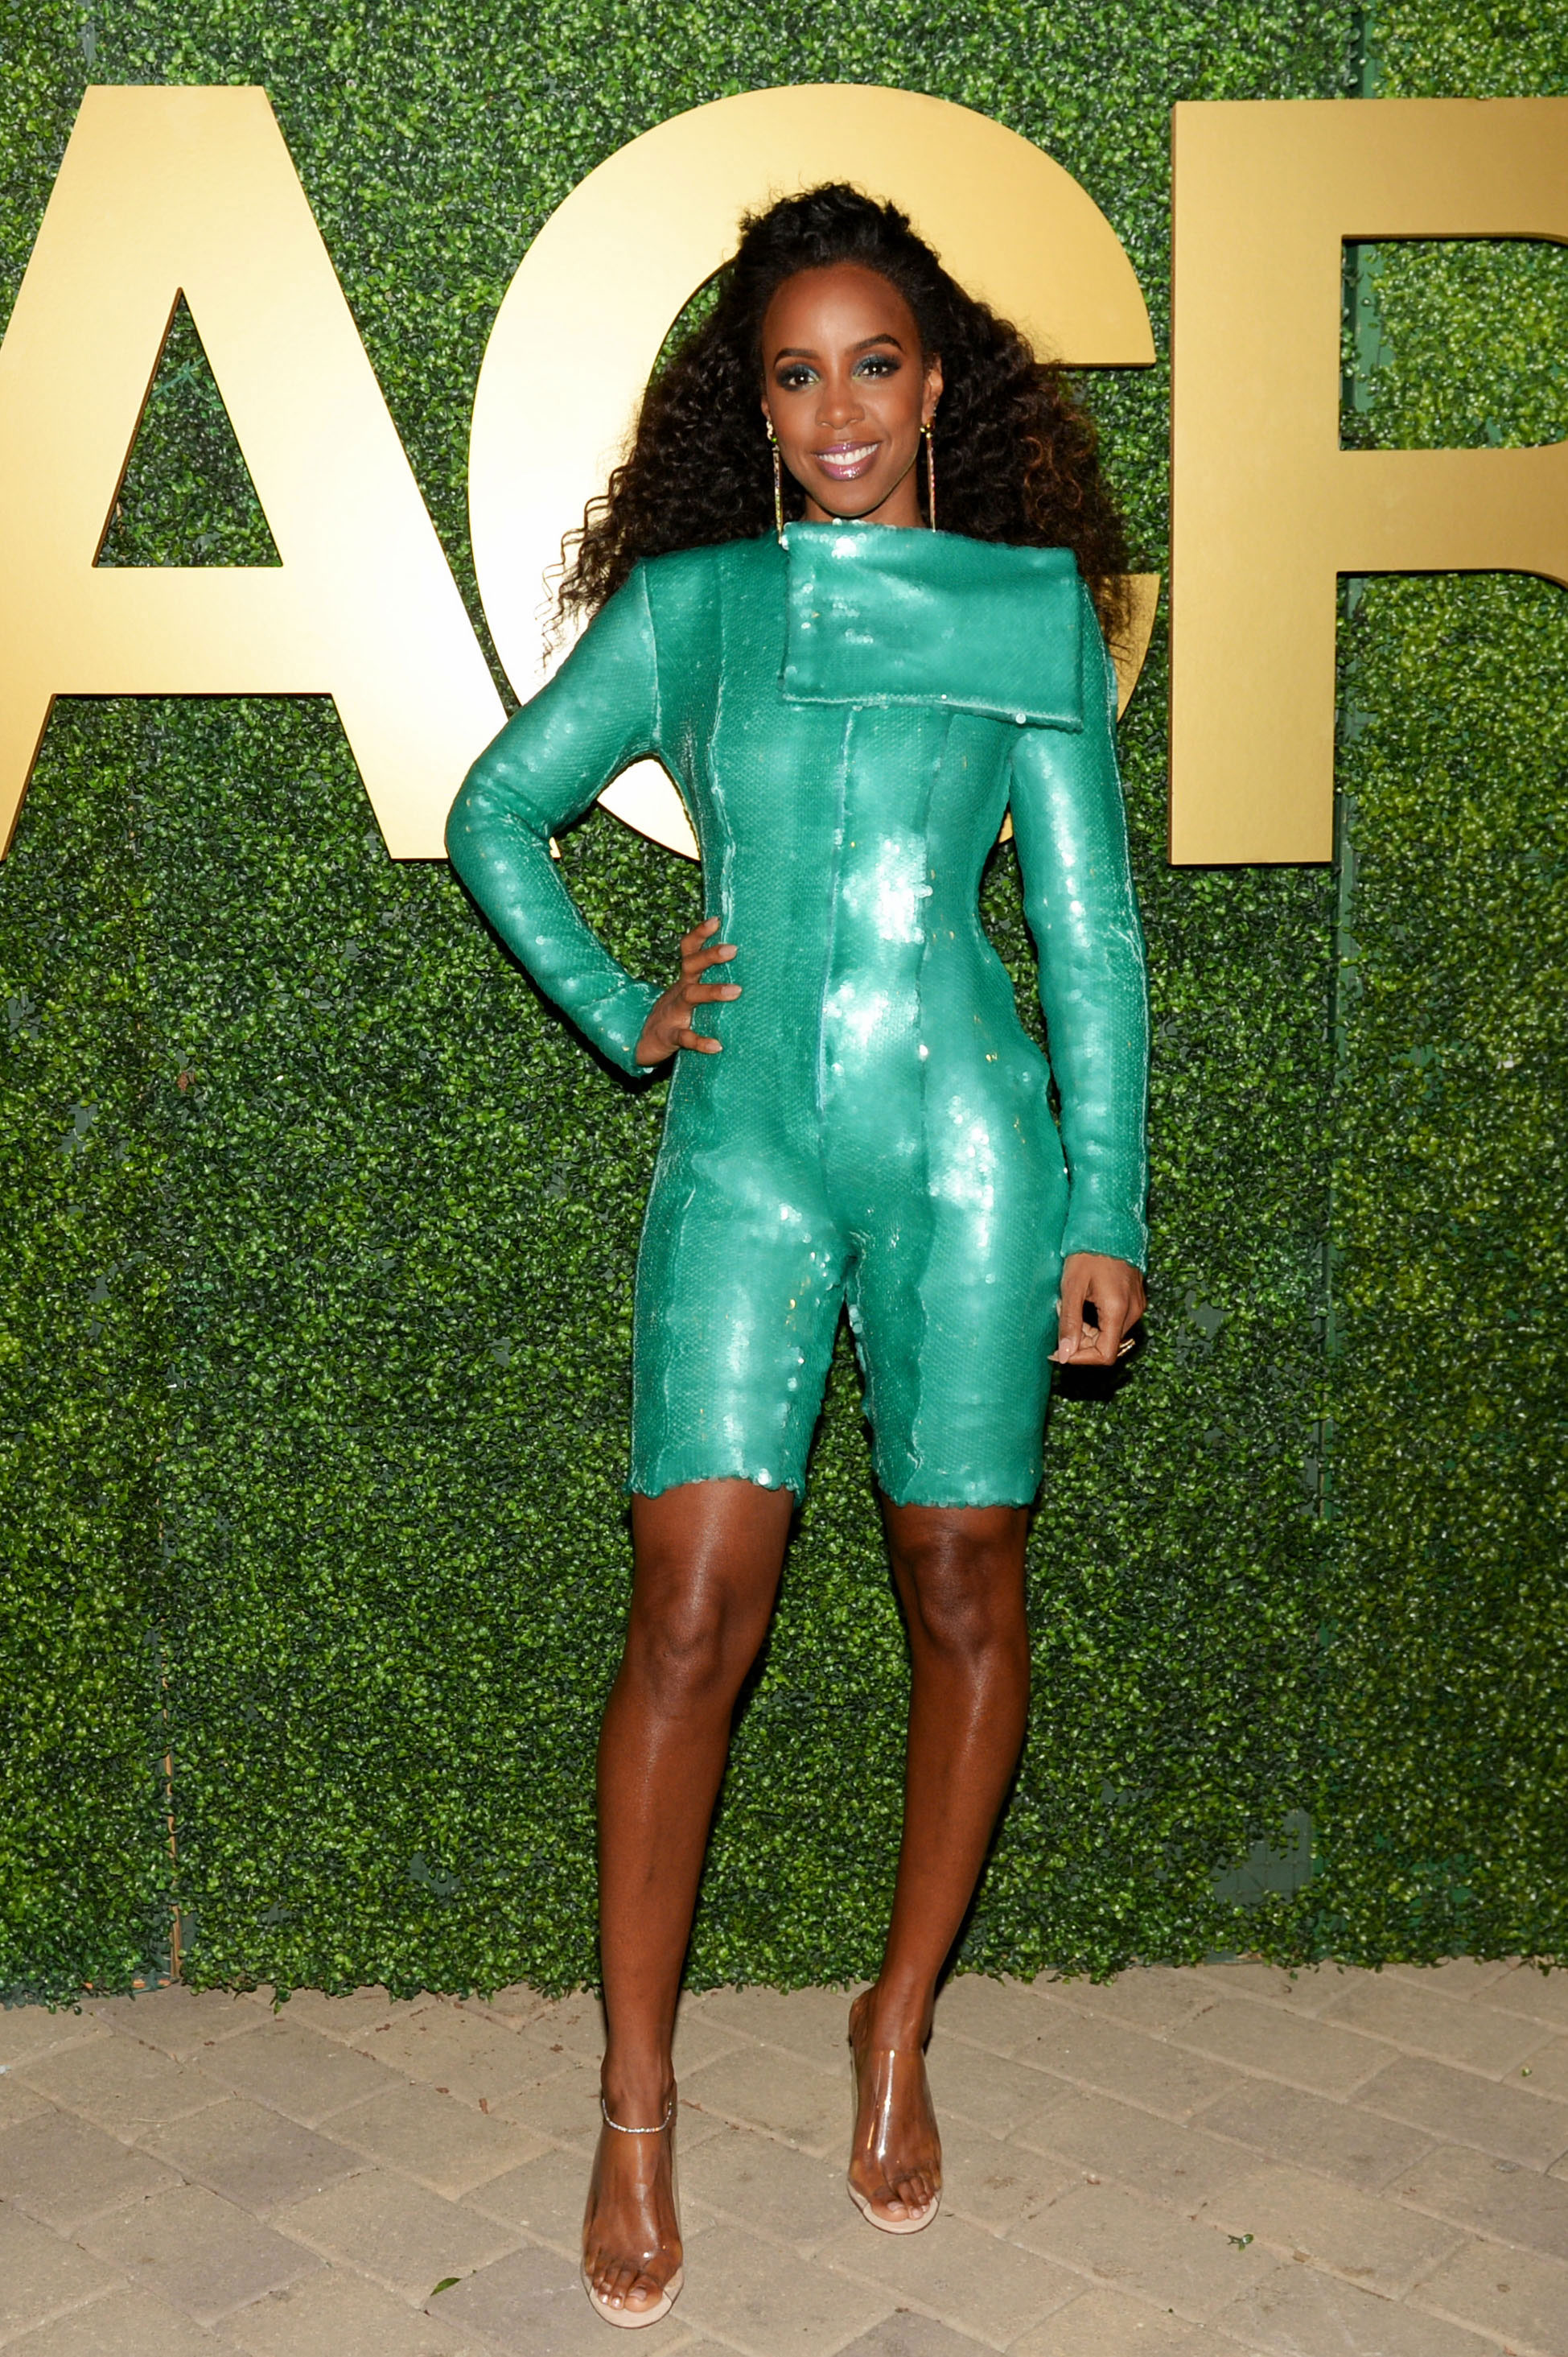 Kelly Rowland MACRO - One-third of Destiny's Child made her way to the ESSENCE x MACRO party, rocking a skintight green sequin playsuit.